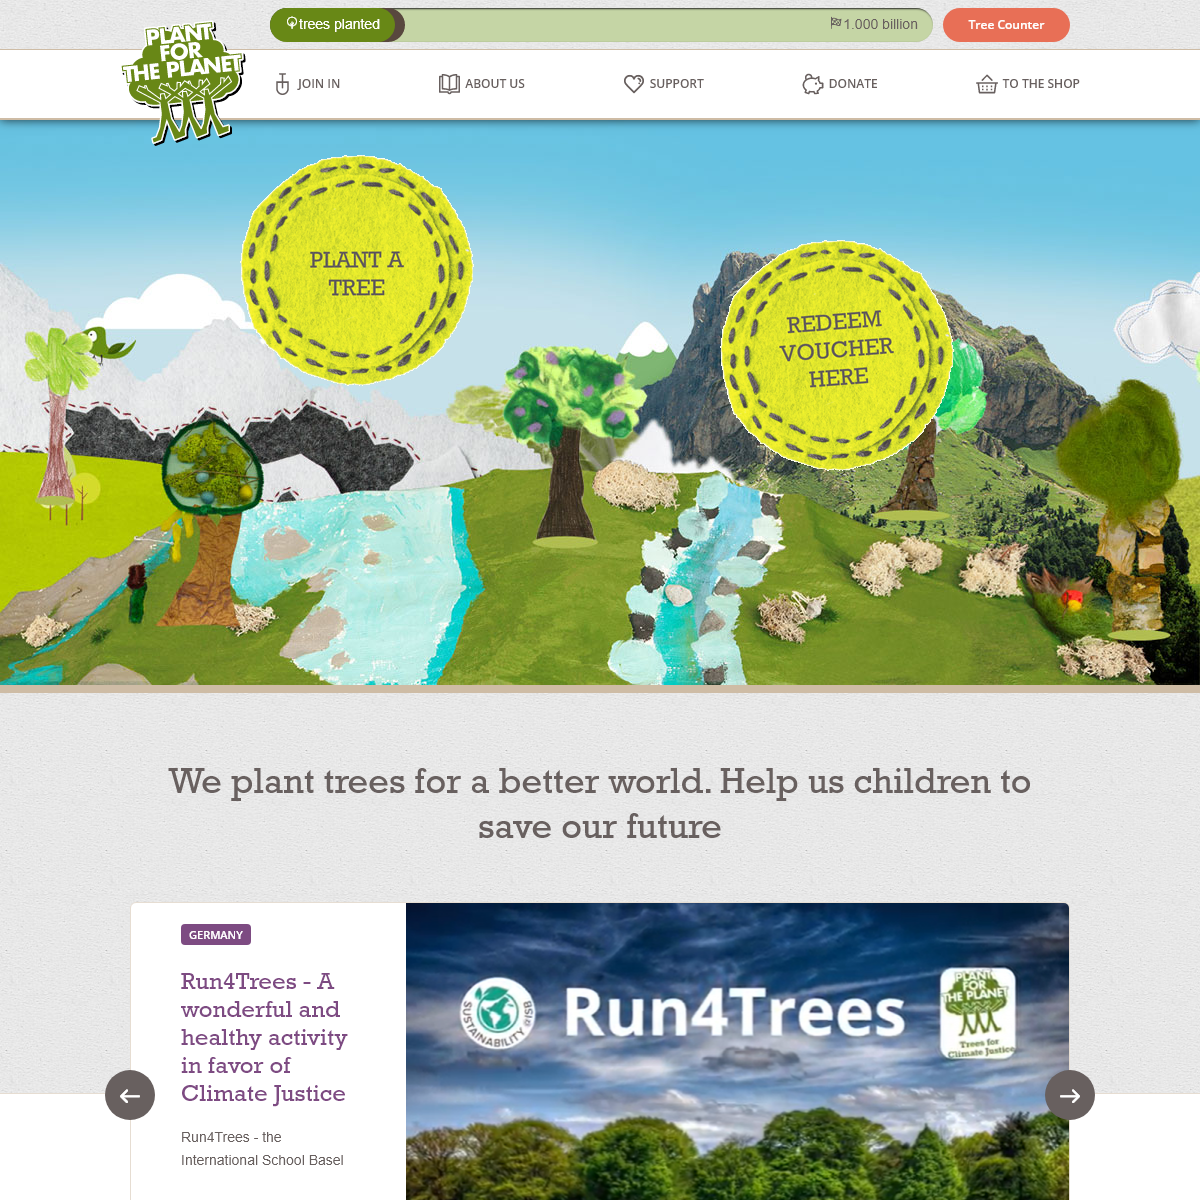 We plant trees for a better world. Help us children to save our future - Plant-for-the-Planet